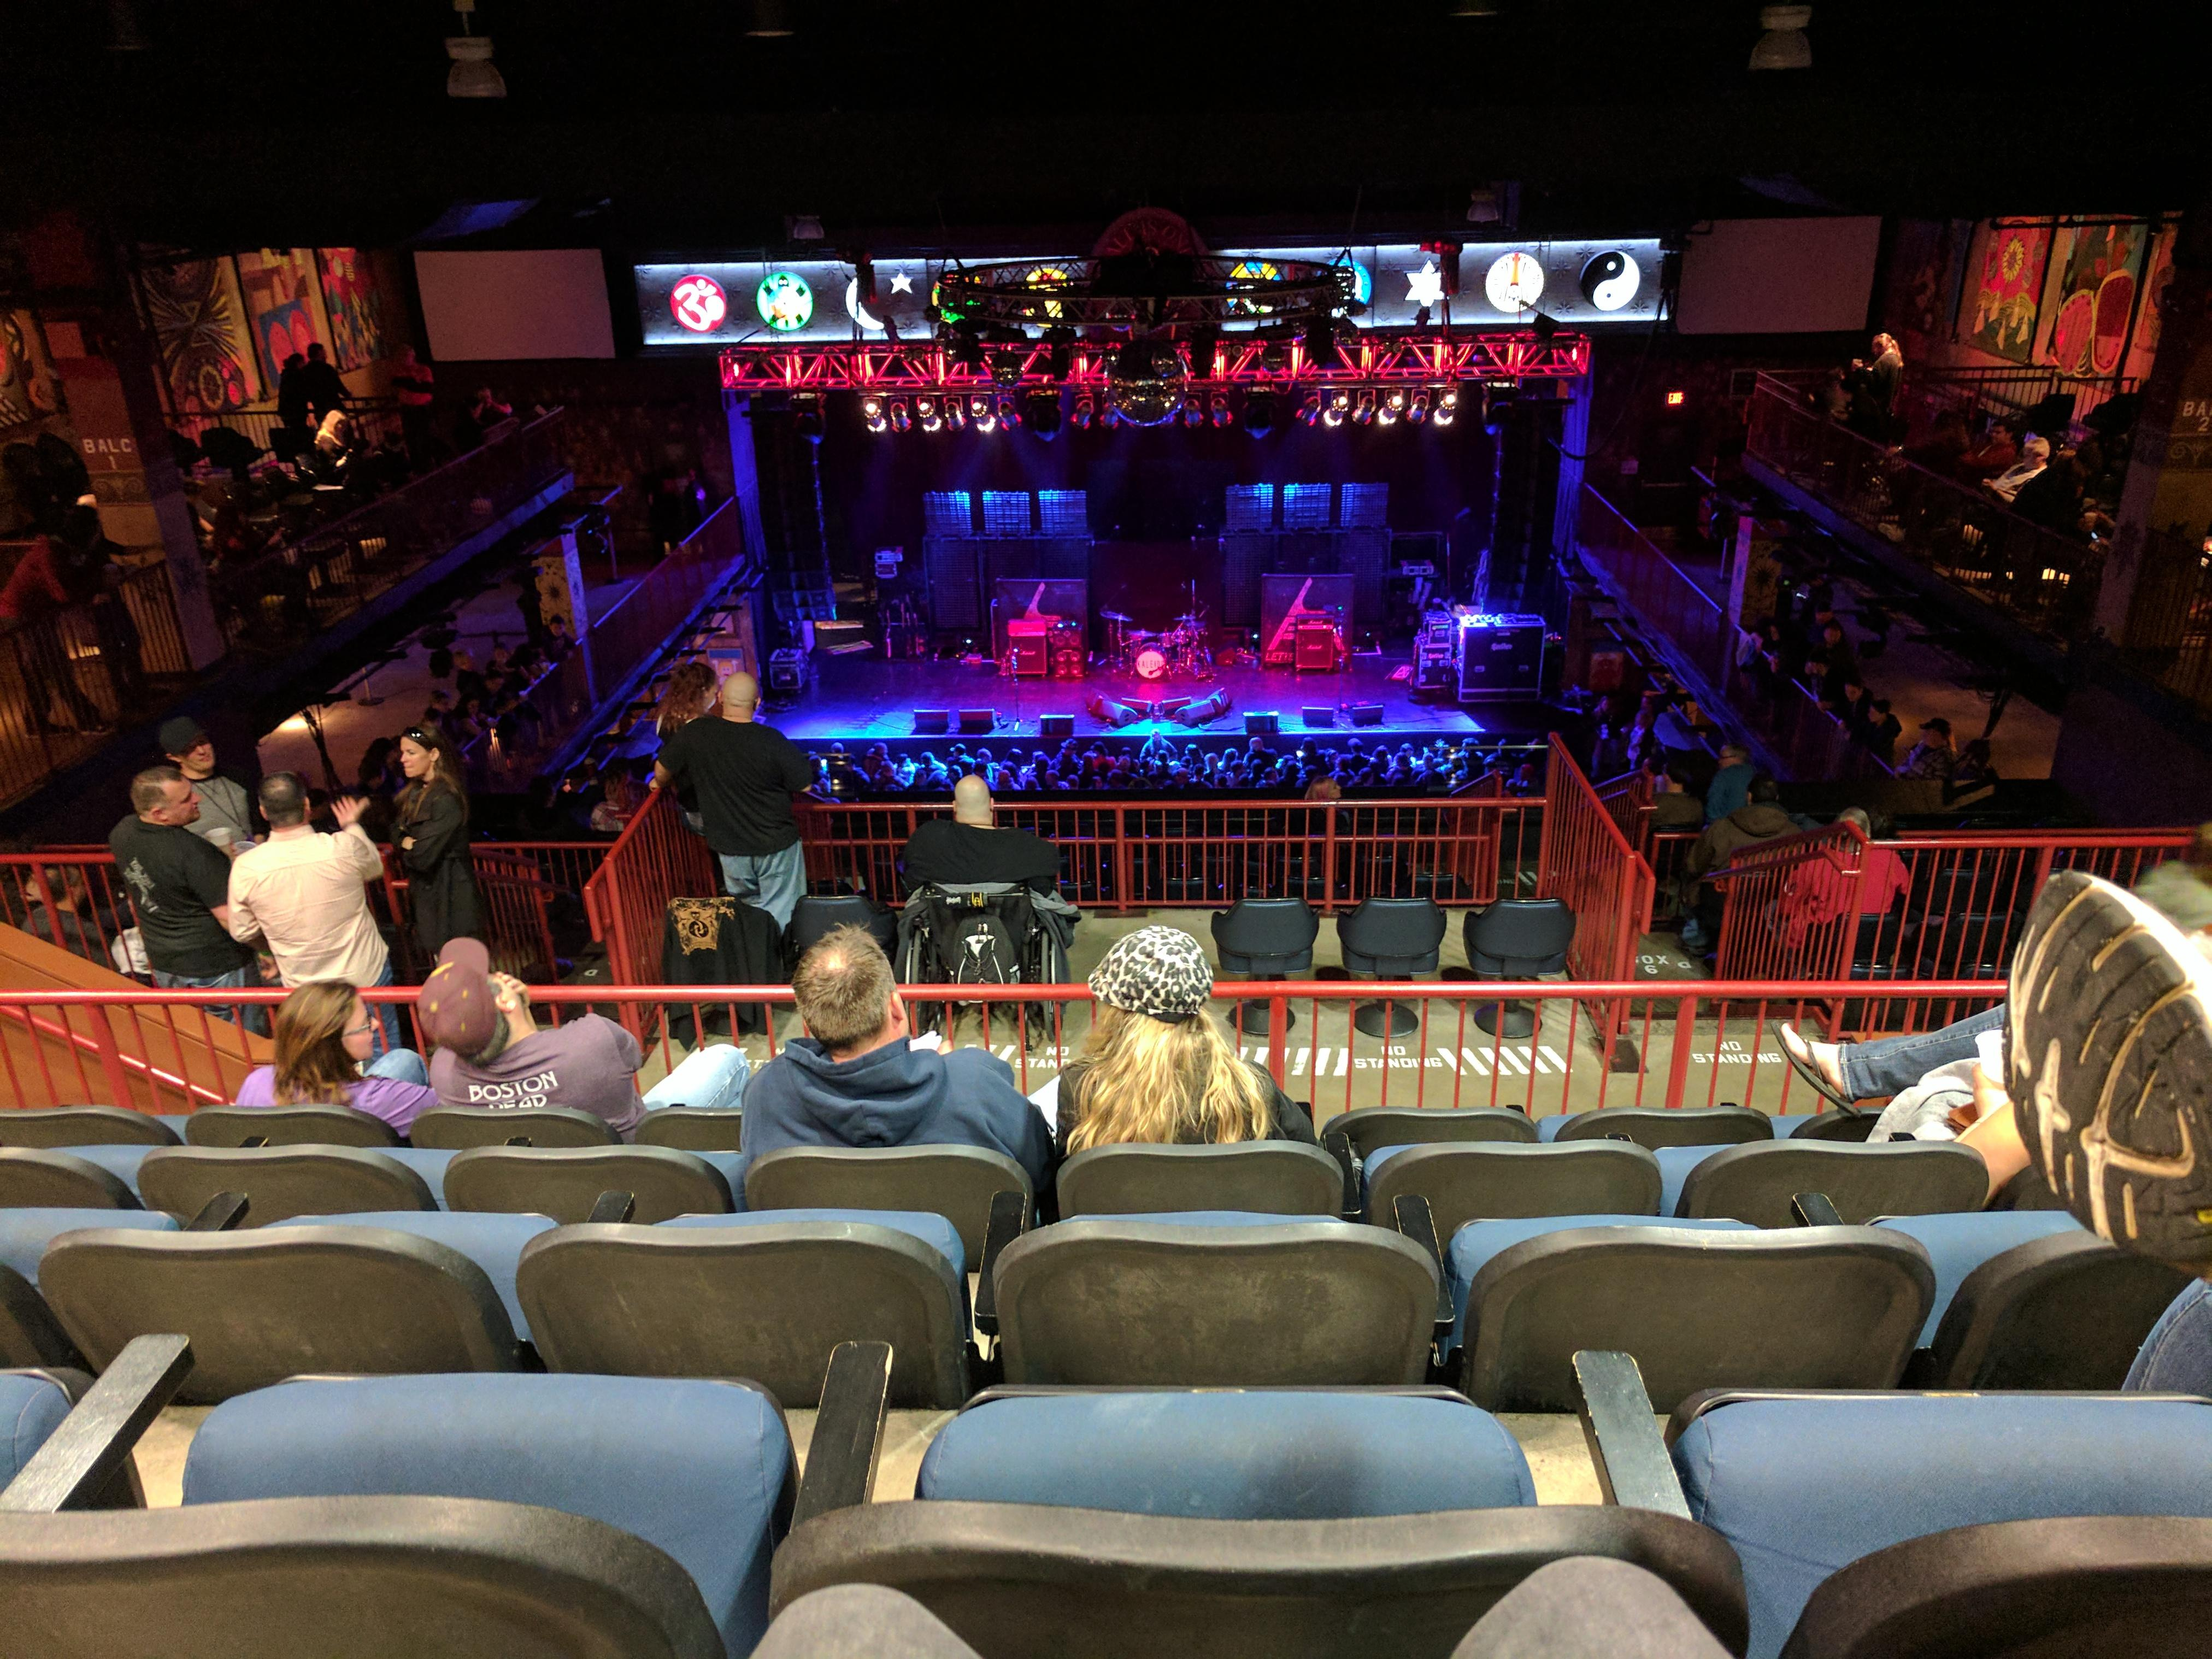 House Of Blues   Boston Section Stadium Row E Seat 312   Seether Vs Poison  The Parish Shared Anonymously